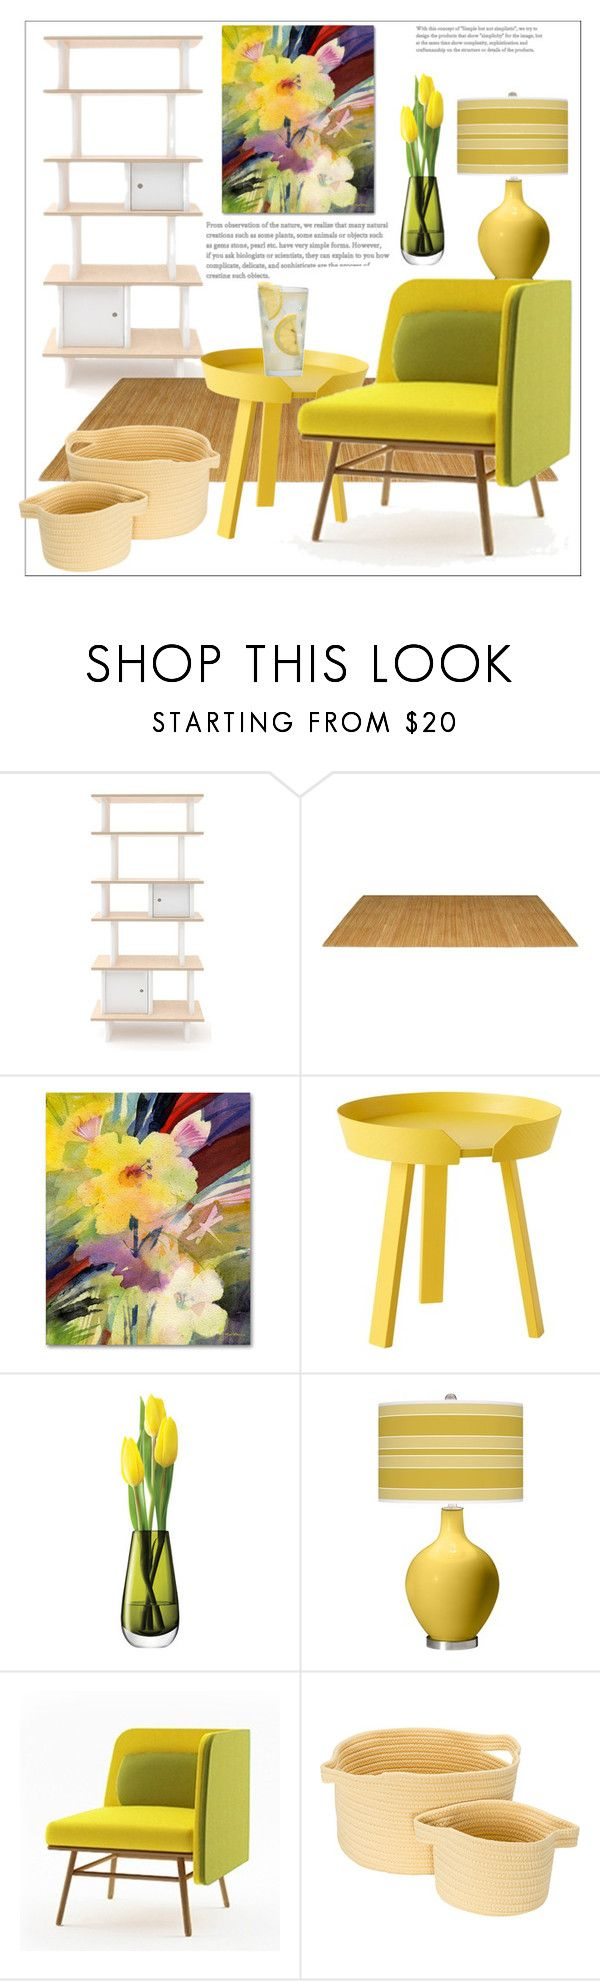 """Yellow Interrior"" by natalyapril1976 on Polyvore featuring interior, interiors, interior design, home, home decor, interior decorating, Oeuf, Trademark Fine Art, Muuto and LSA International"